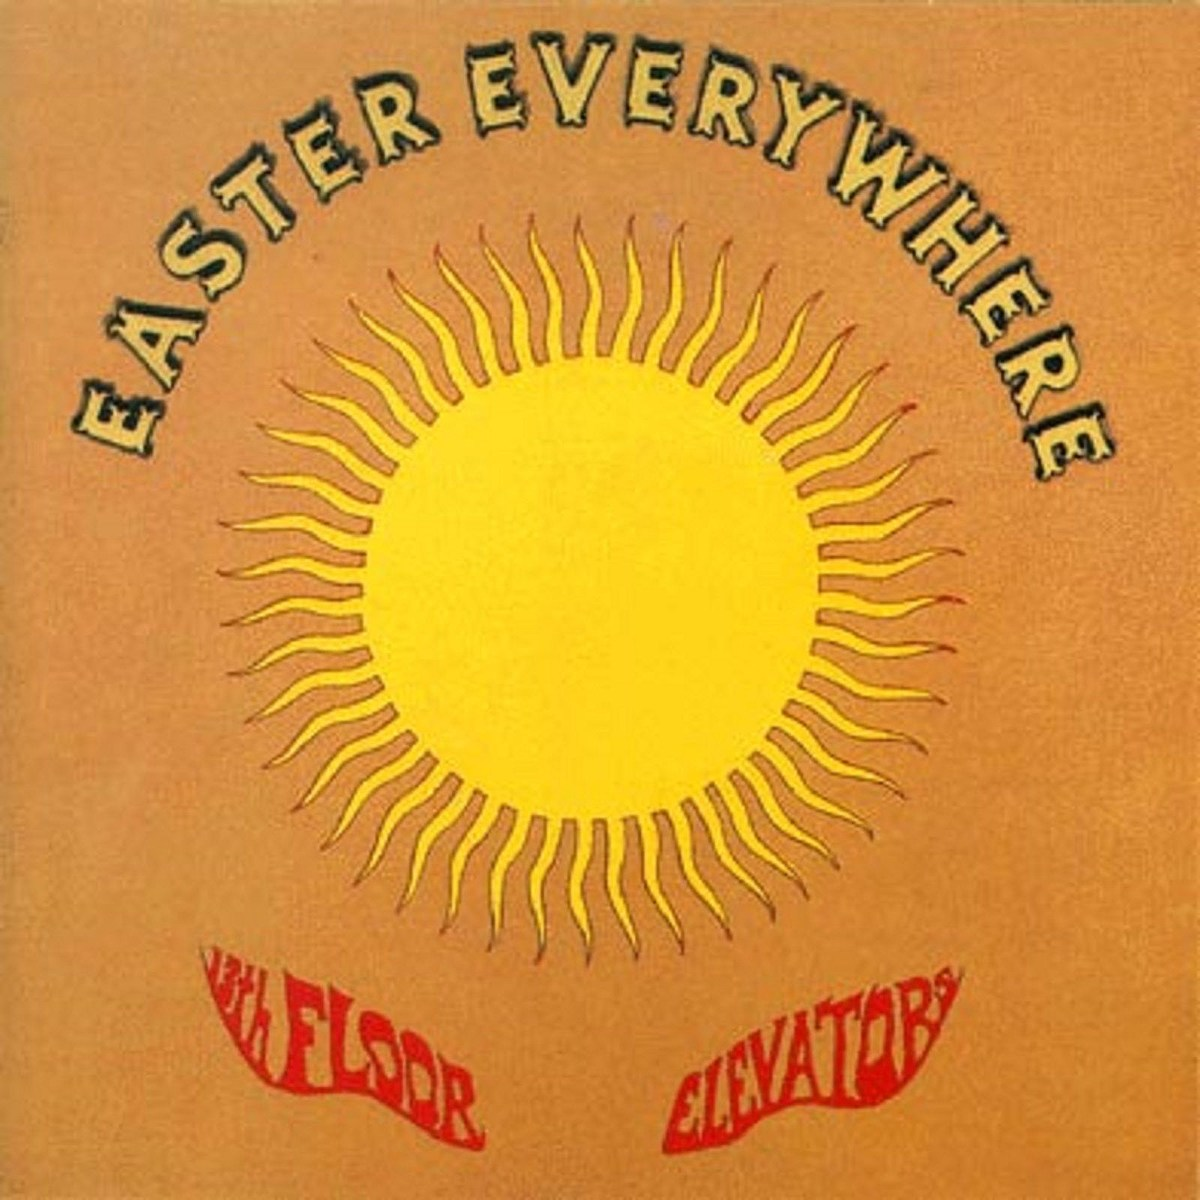 Roky Erickson playing The 13th Floor Elevators' 'Easter Everywhere' in full in NJ before Huichica East